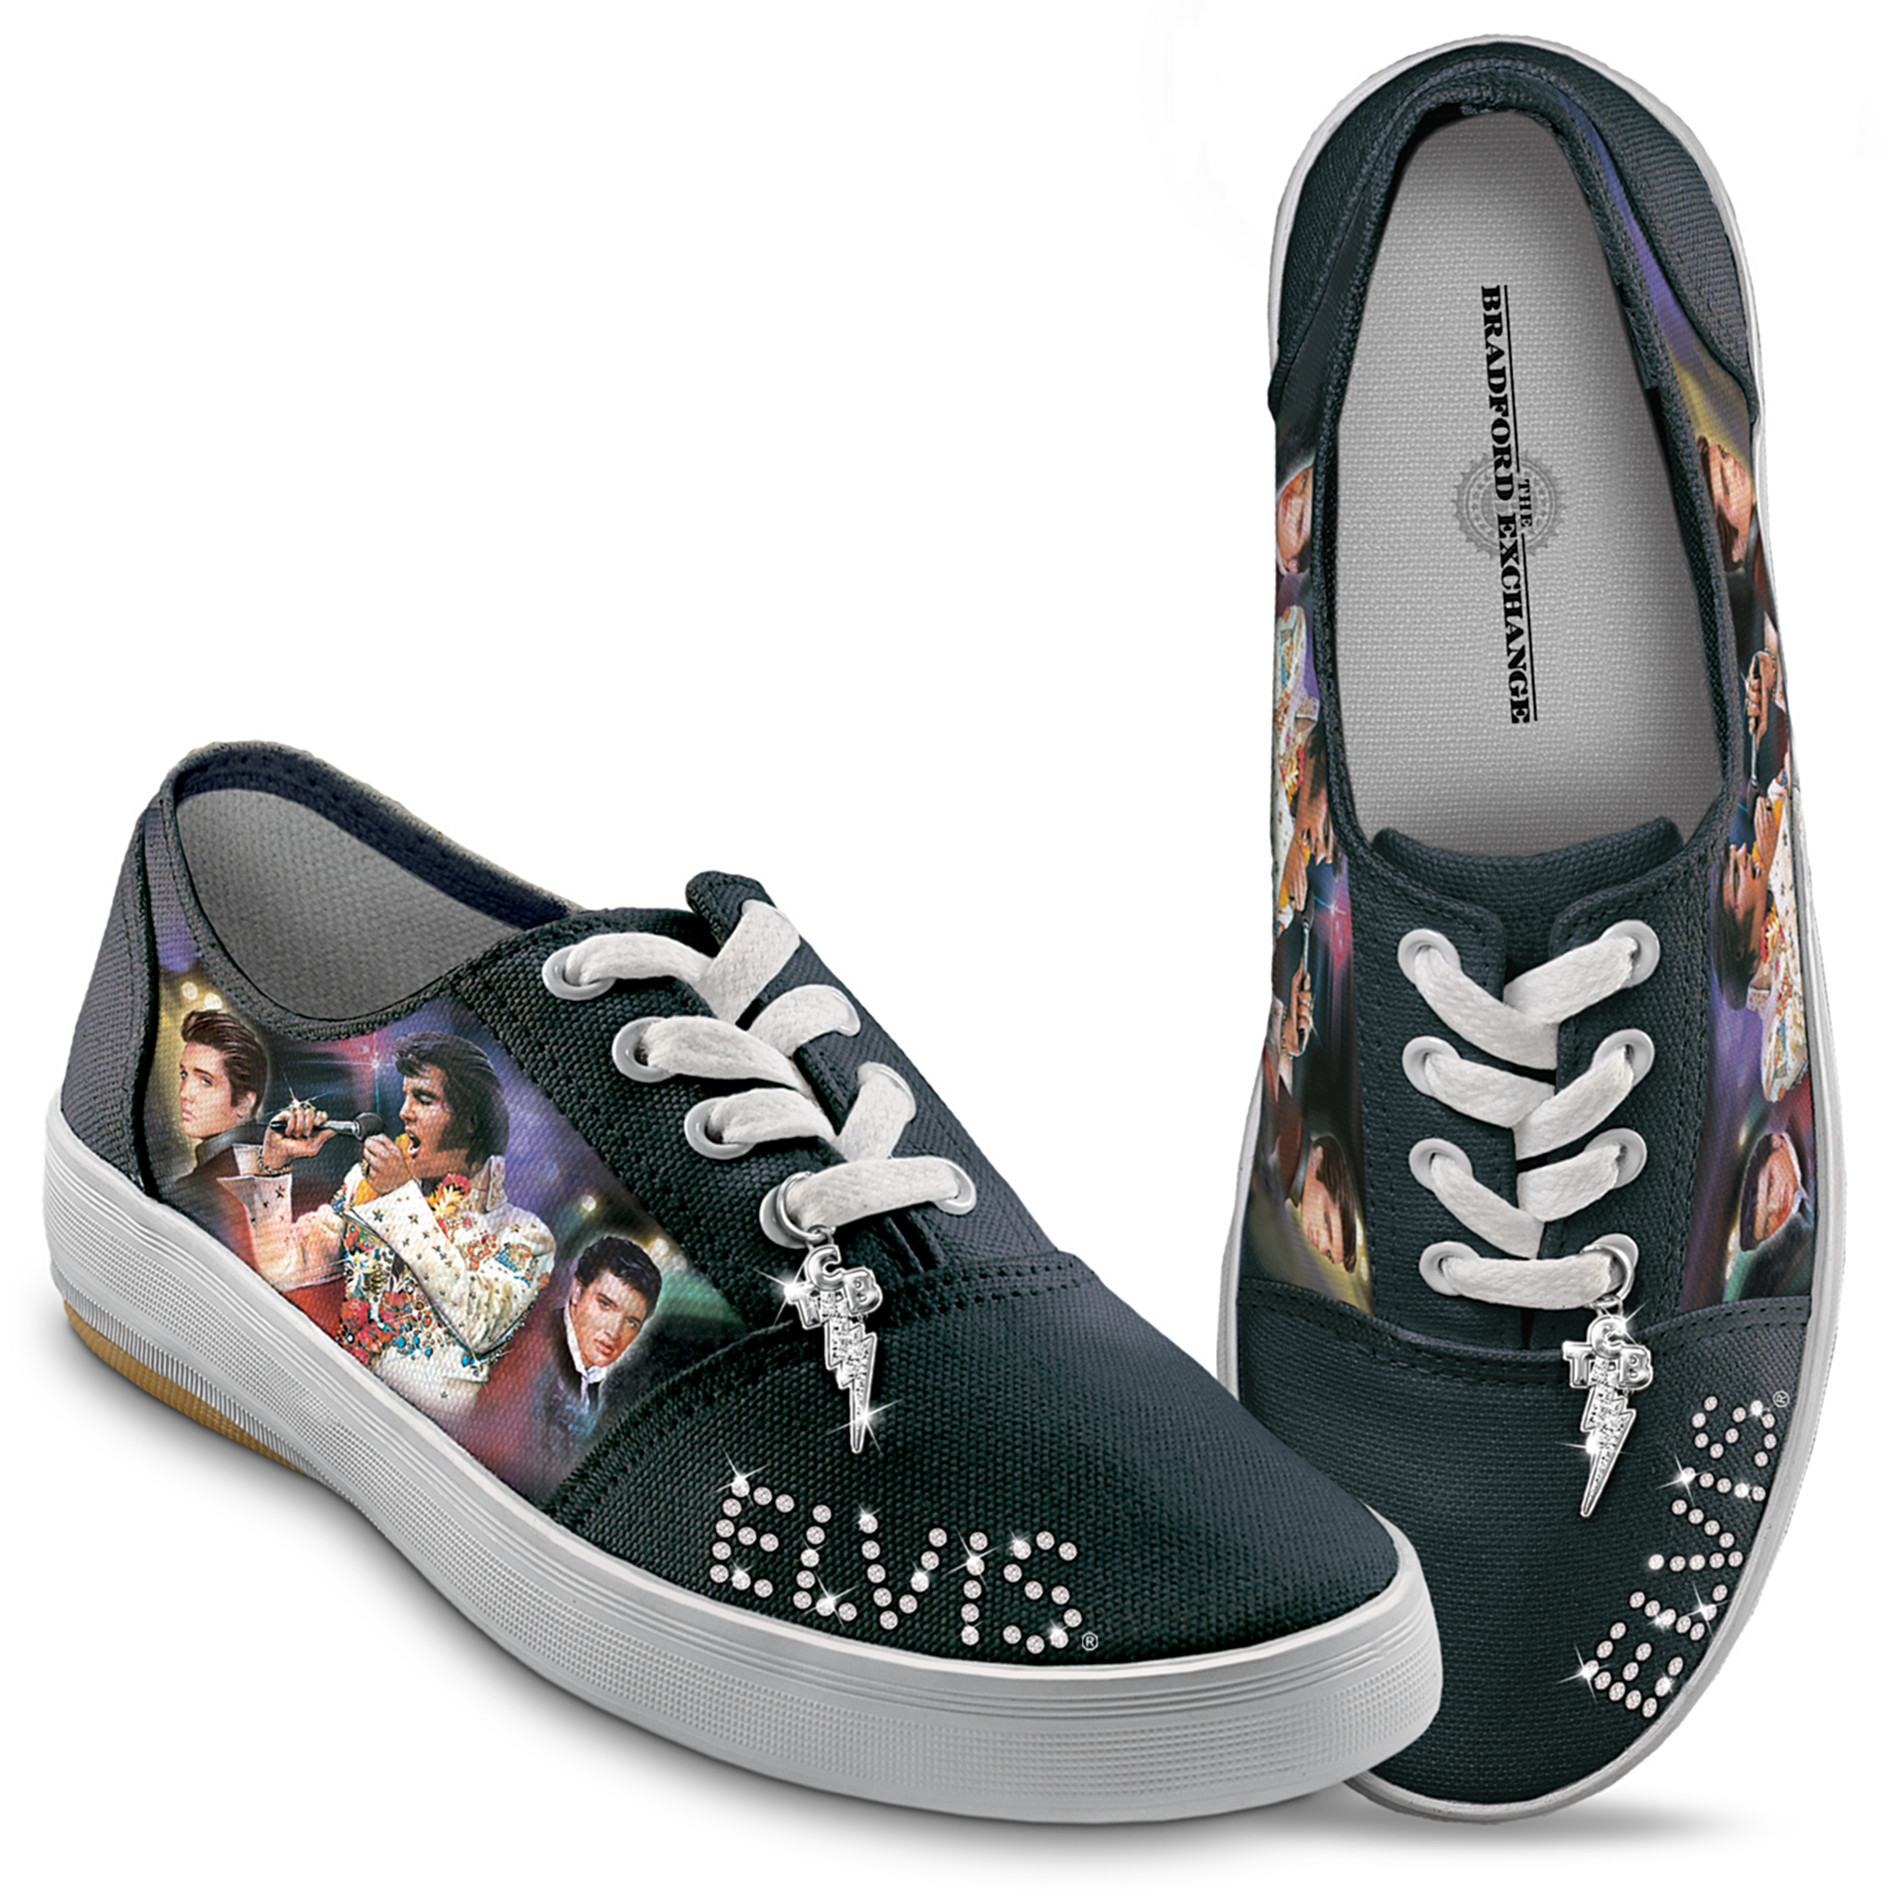 The Bradford Exchange Elvis Presley Signature Canvas Sneakers at Sears.com